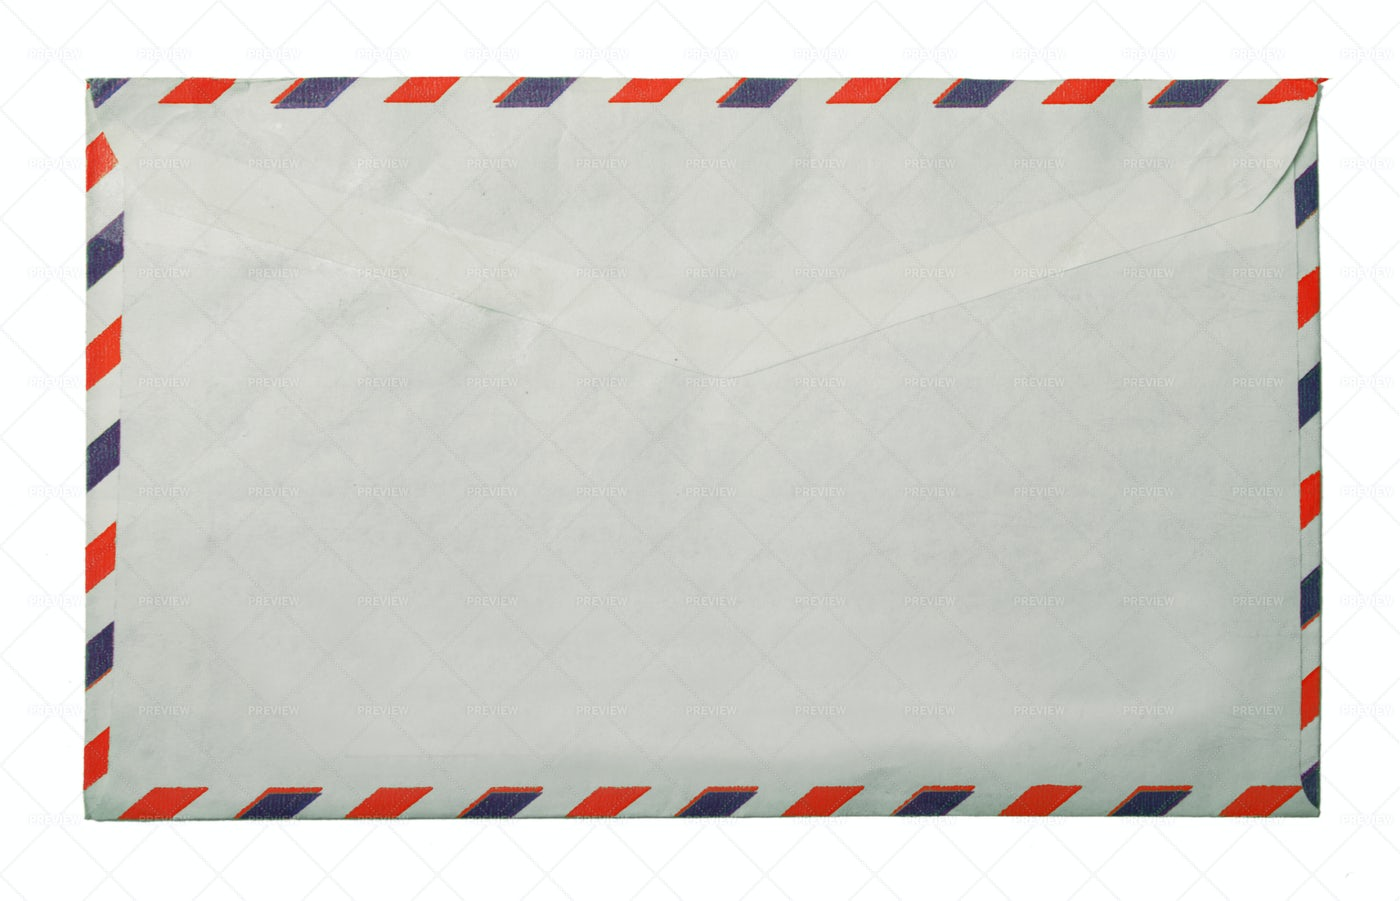 Correspondence Envelope: Stock Photos